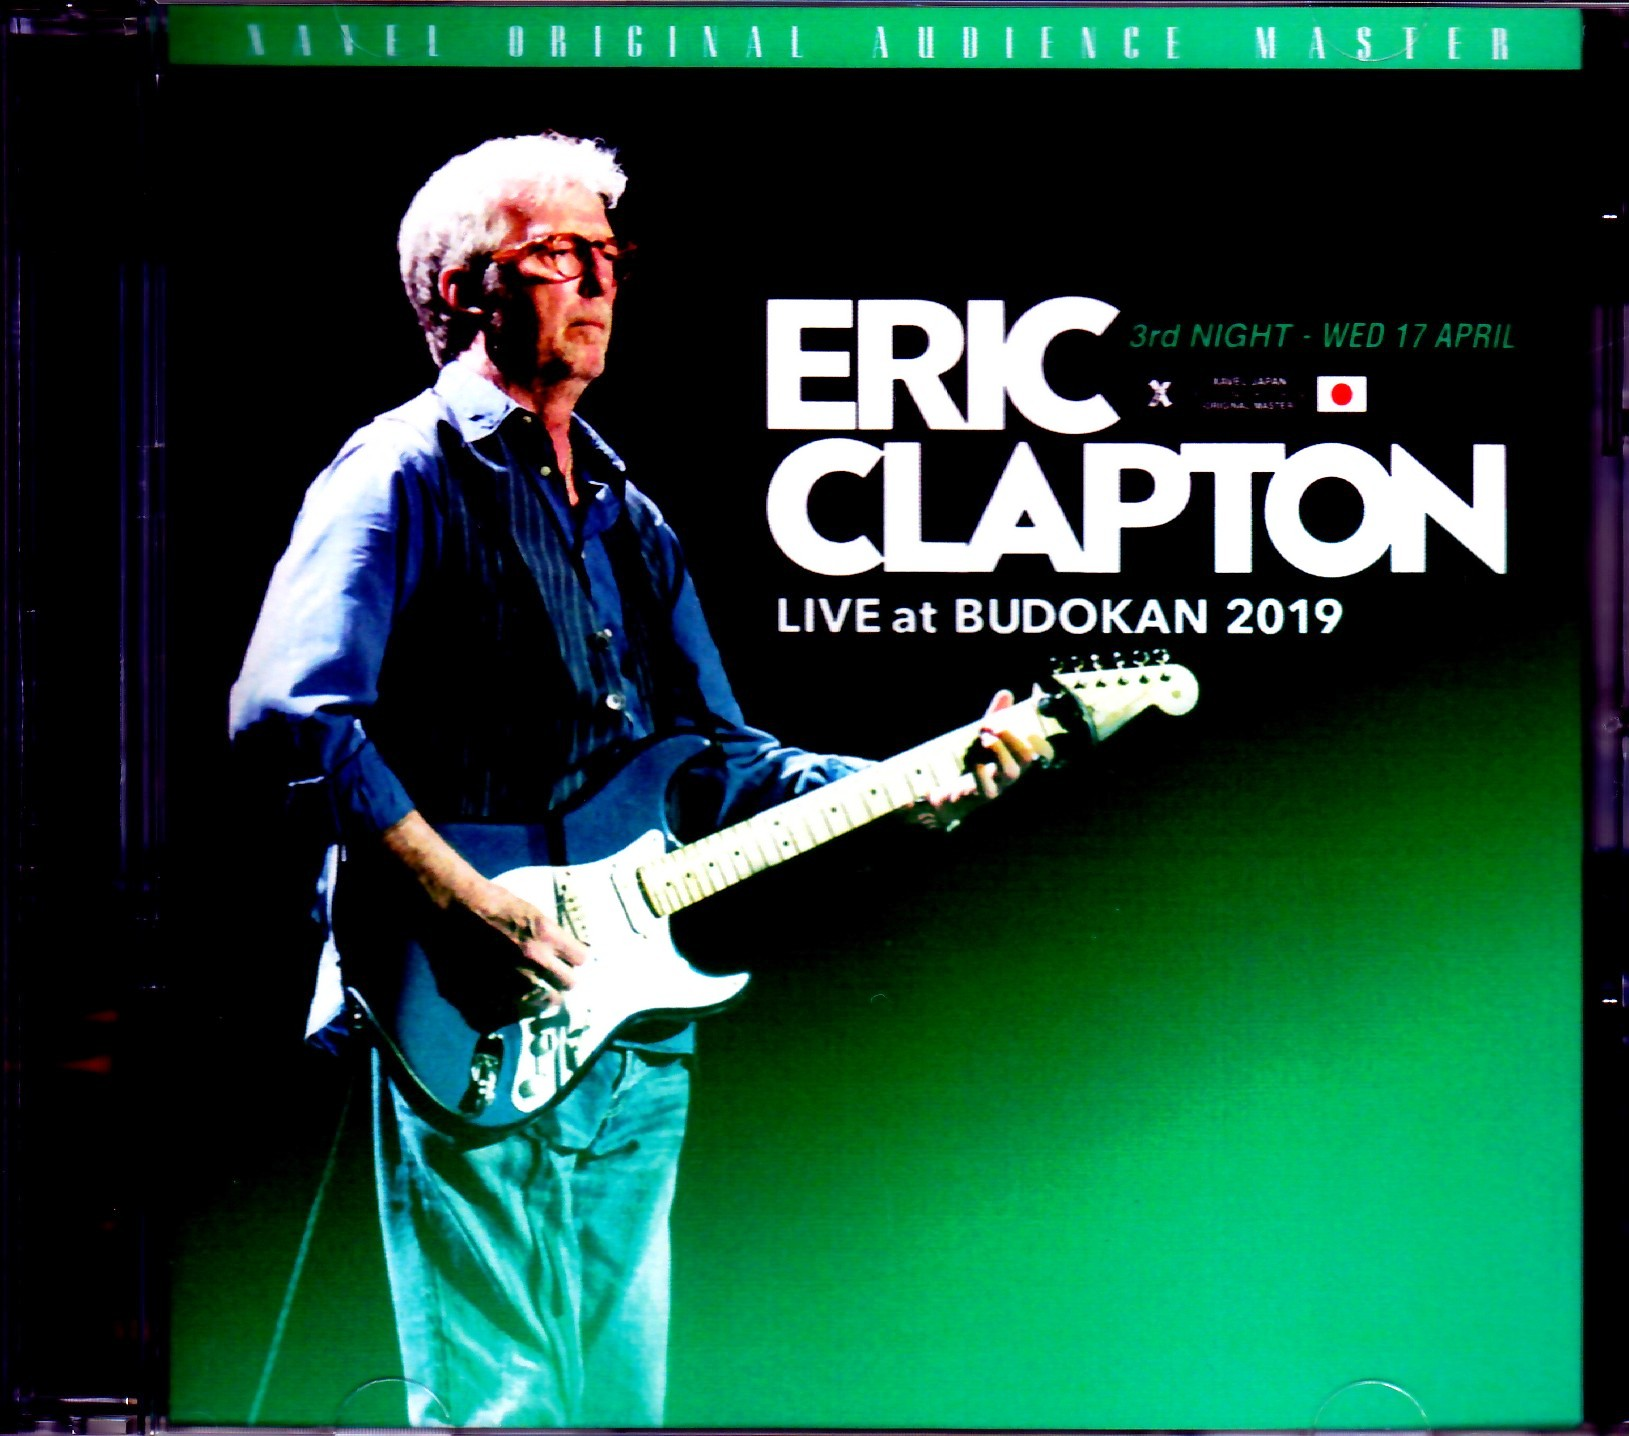 Eric Clapton エリック・クラプトン/Tokyo,Japan 4.17.2019 Omnidirectional Microphone